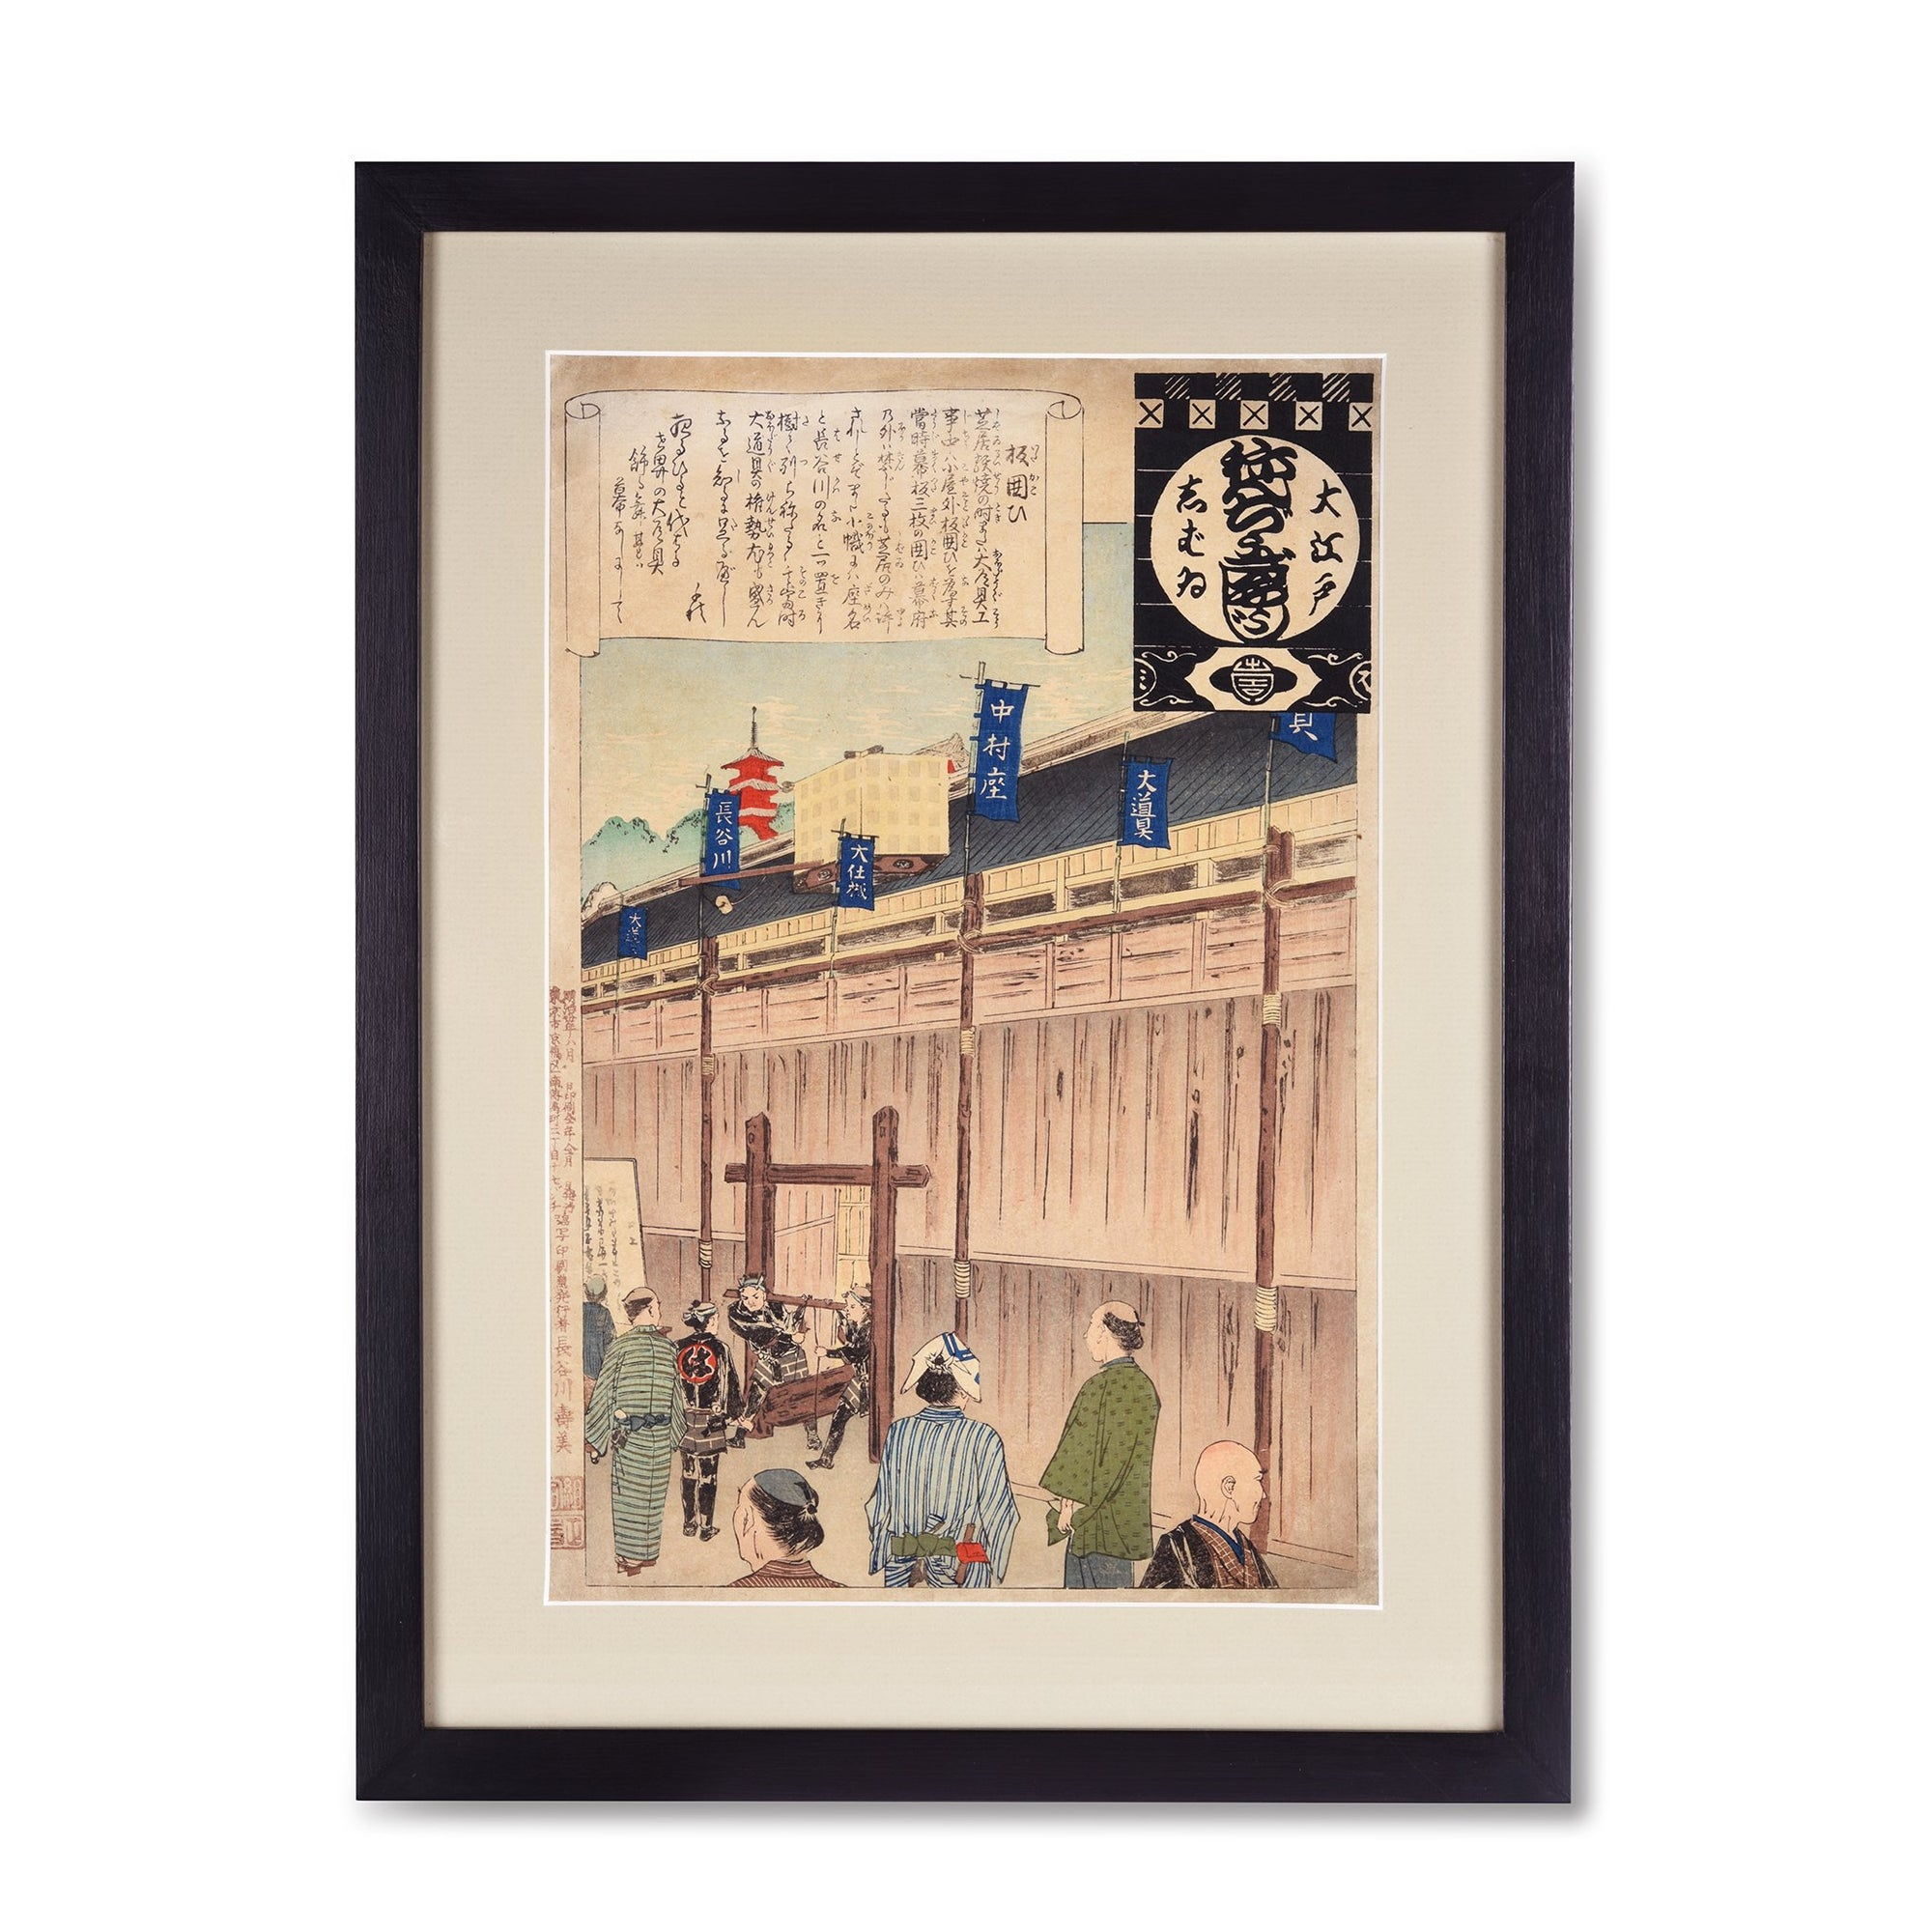 Framed Japanese Wood Block Print - 19thC | Indigo Oriental Antiques